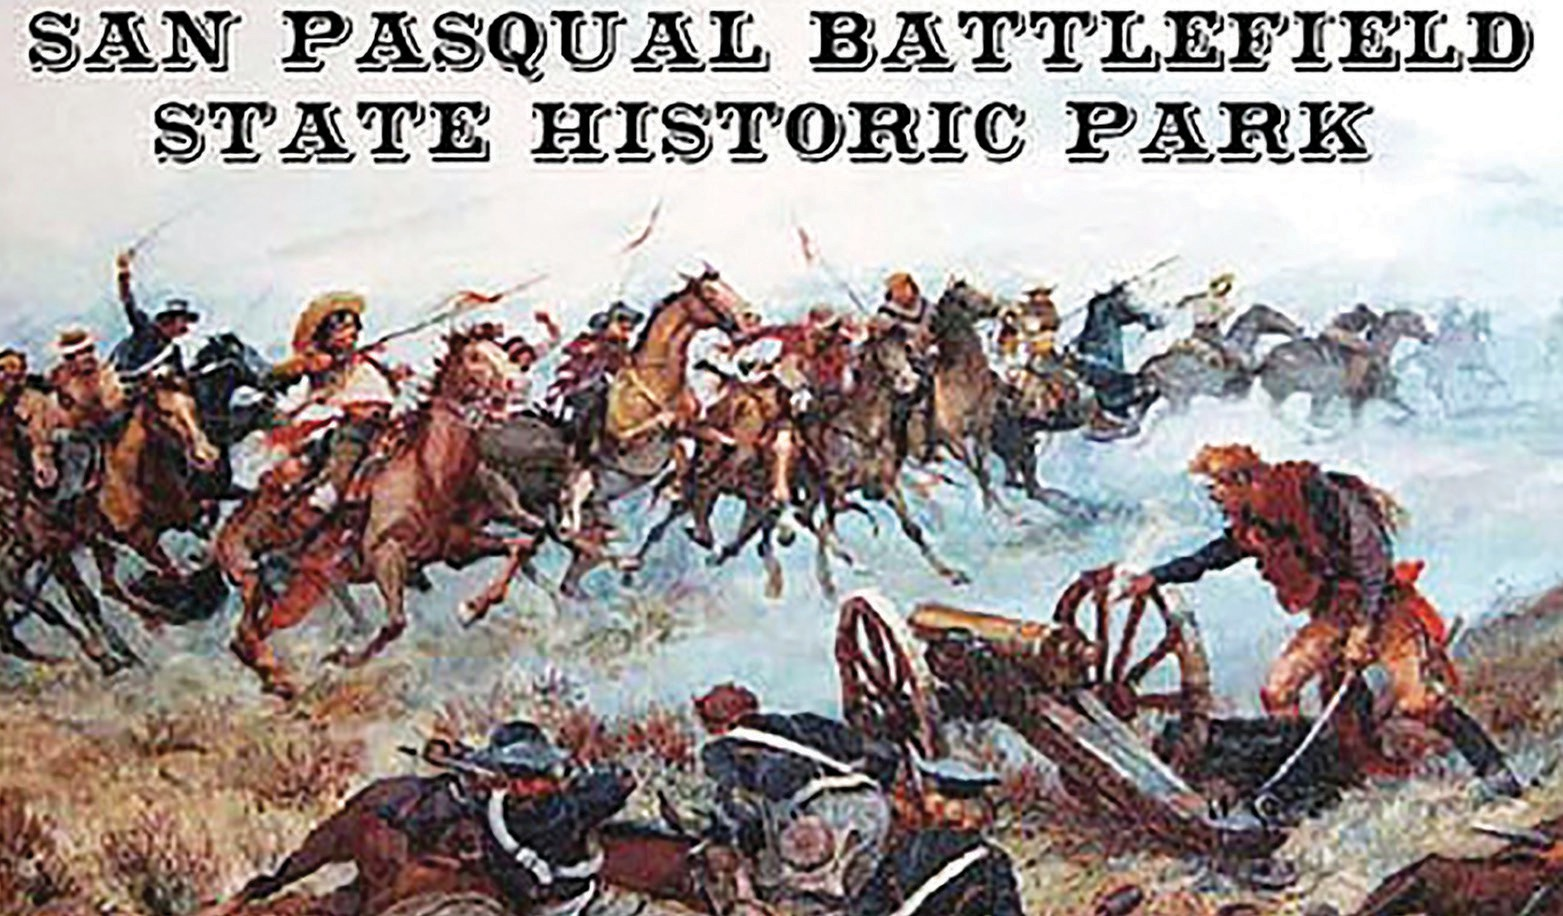 A painting at the San Pasqual Battlefield Museum, which is part of the San Pasqual Battlefield State Historic Park.